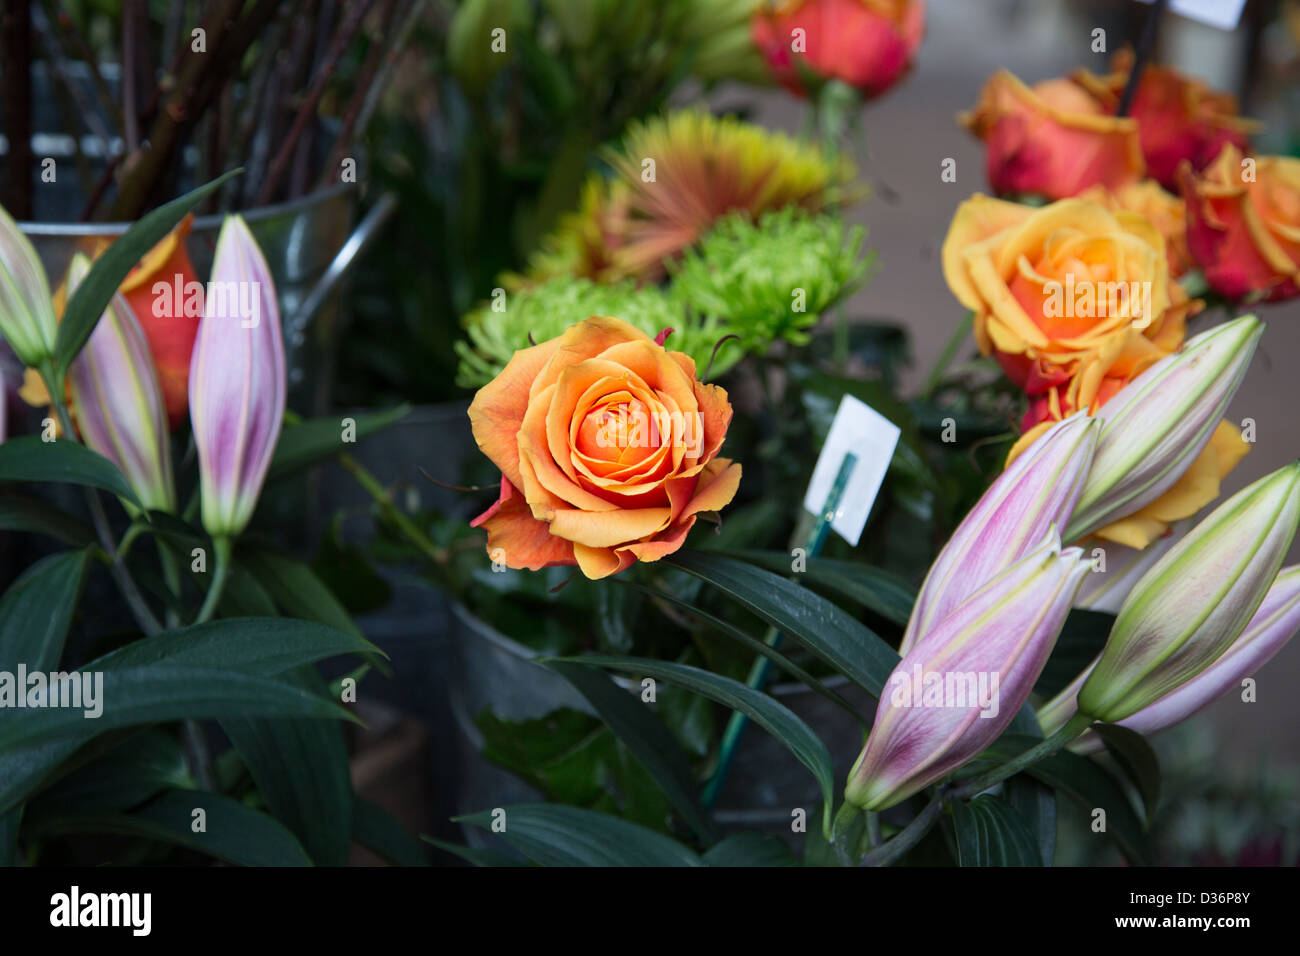 Flowers, Borough Market, London - Stock Image